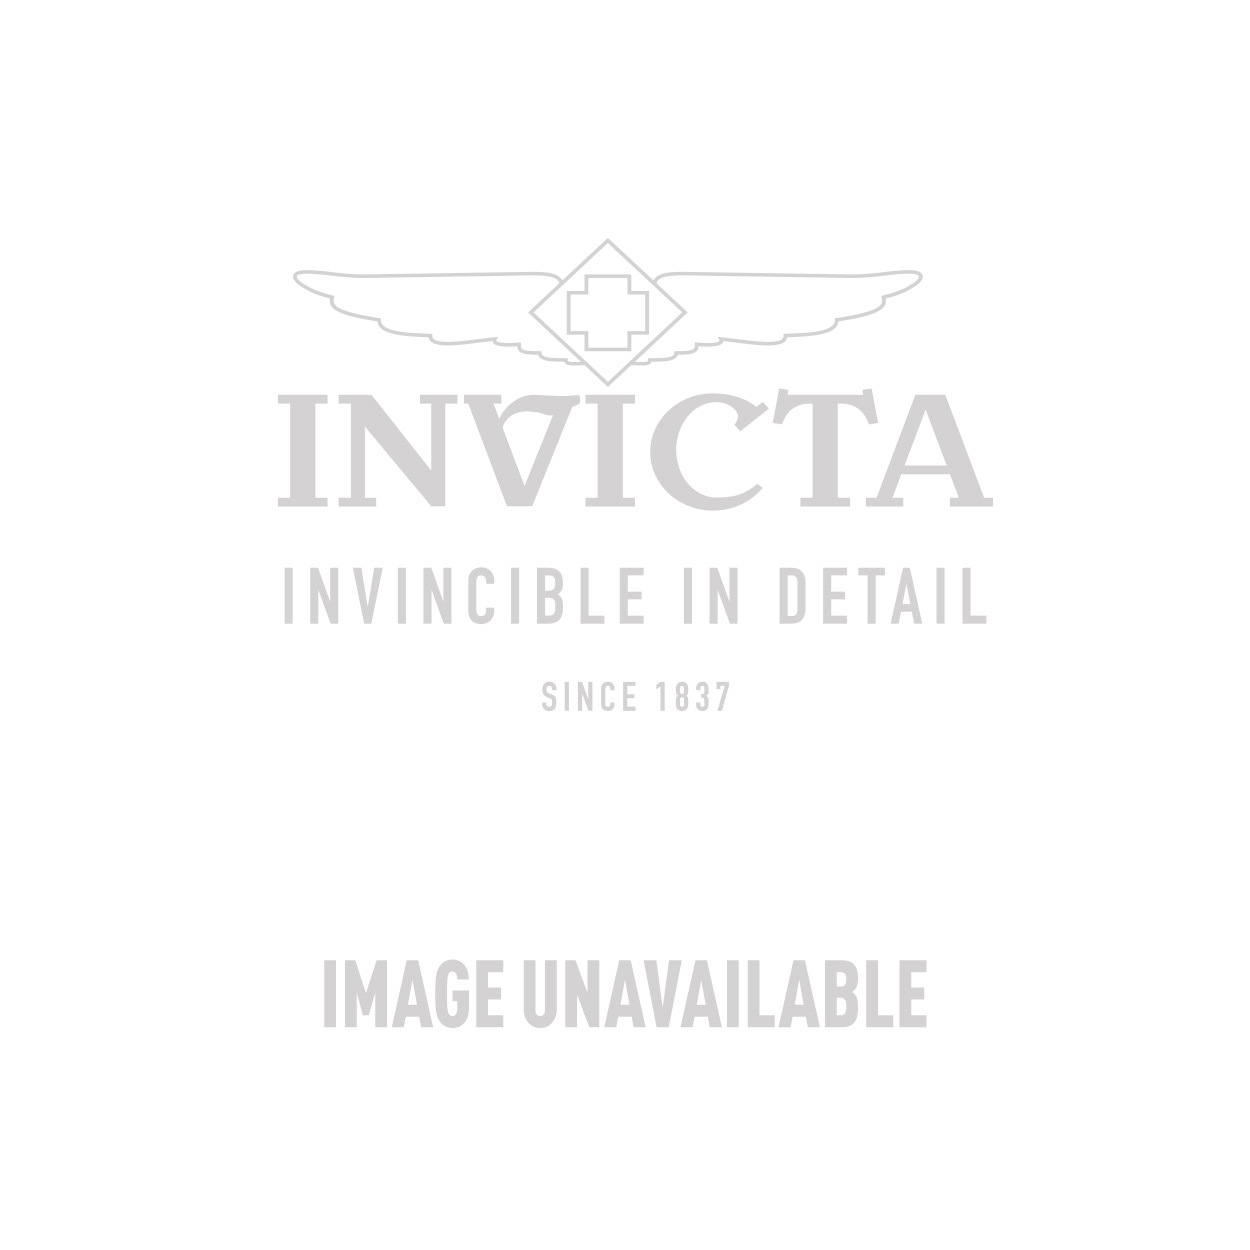 Invicta Akula Swiss Made Quartz Watch - Gold case Stainless Steel band - Model 11592